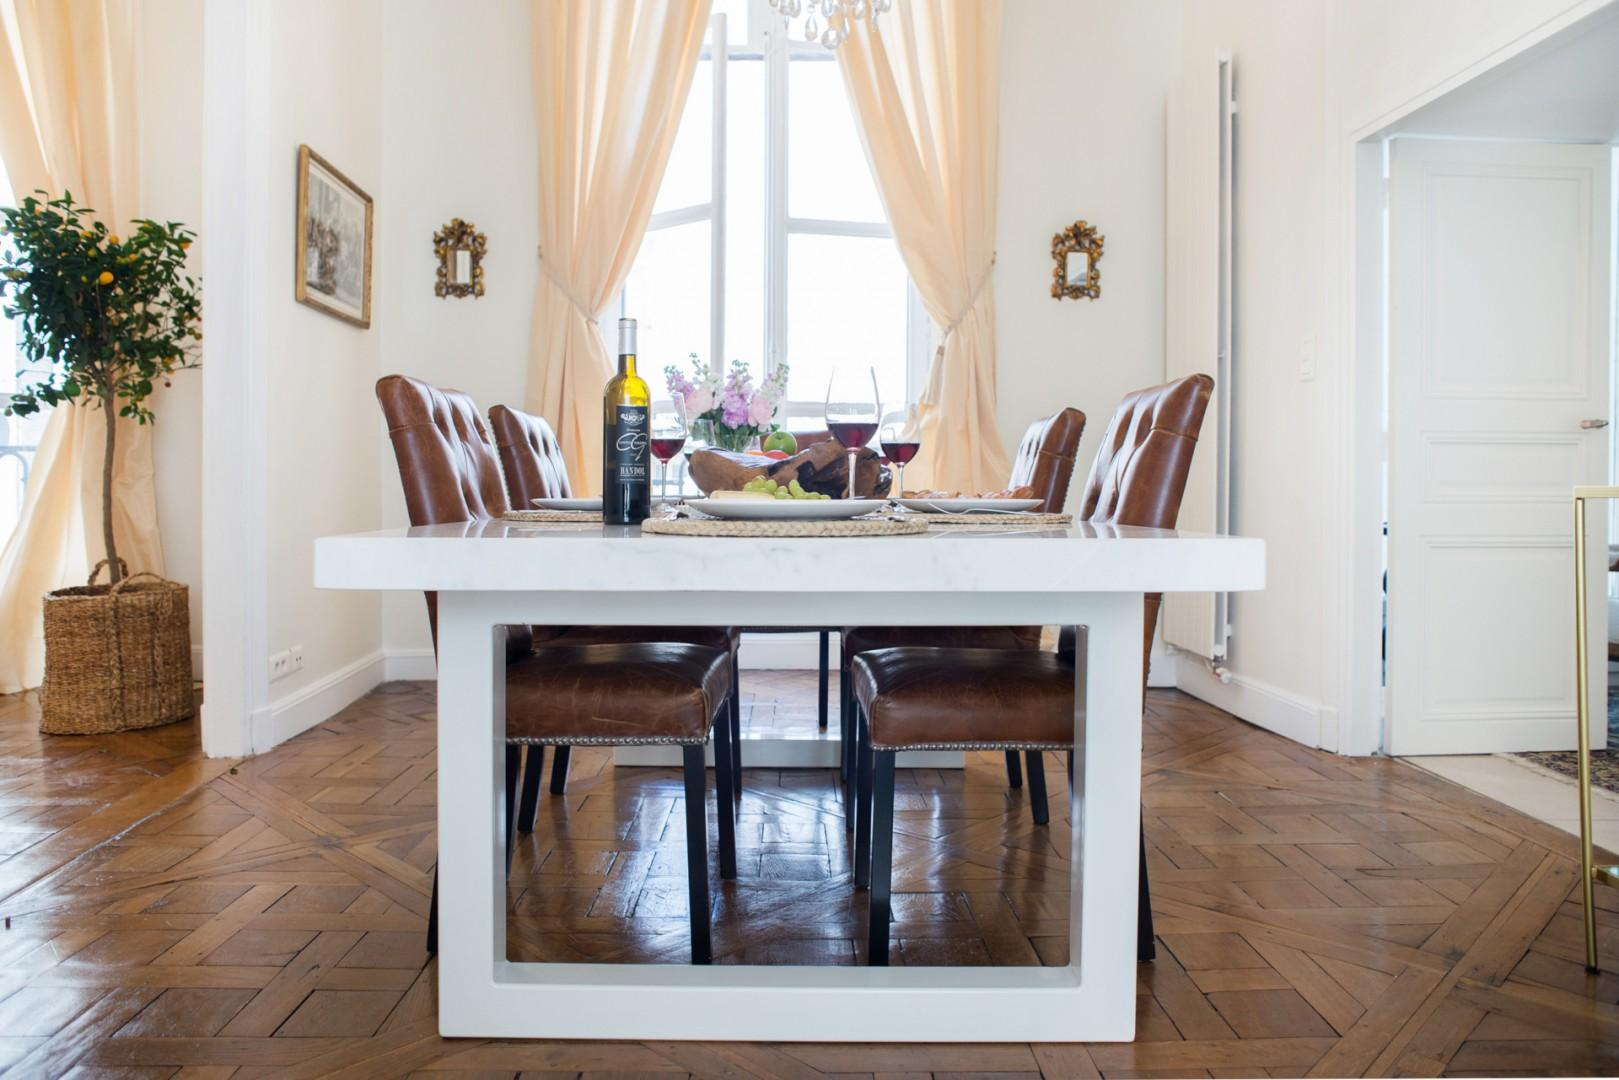 Enjoy meals in the gorgeous dining room with plenty of space to entertain.